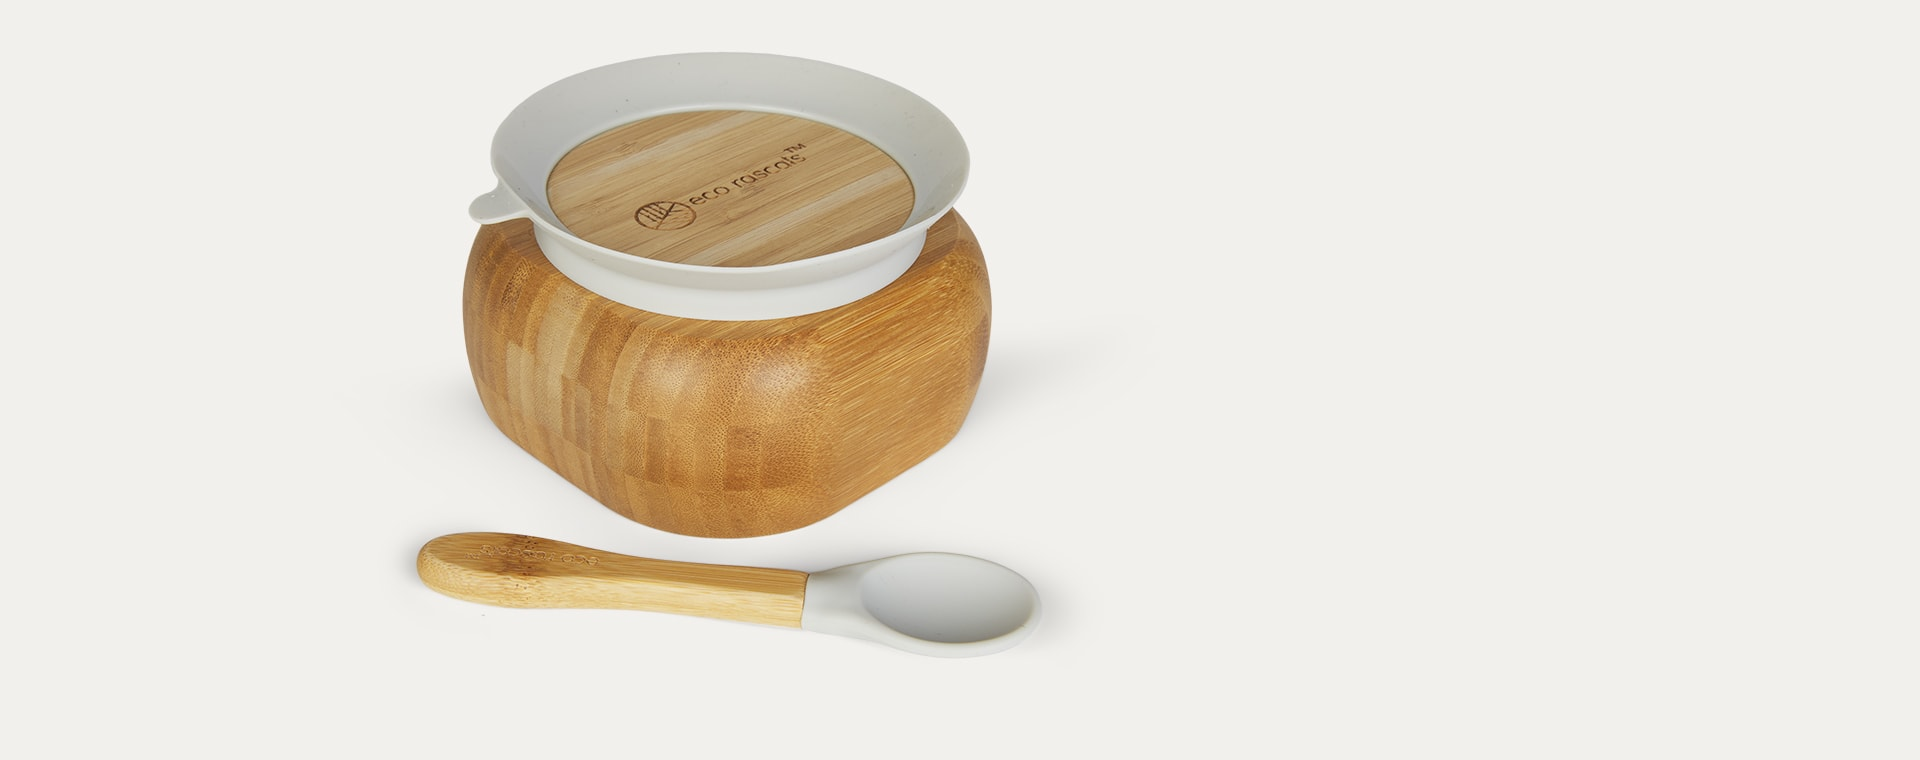 Grey eco rascals Bamboo Suction Bowl and Spoon Set